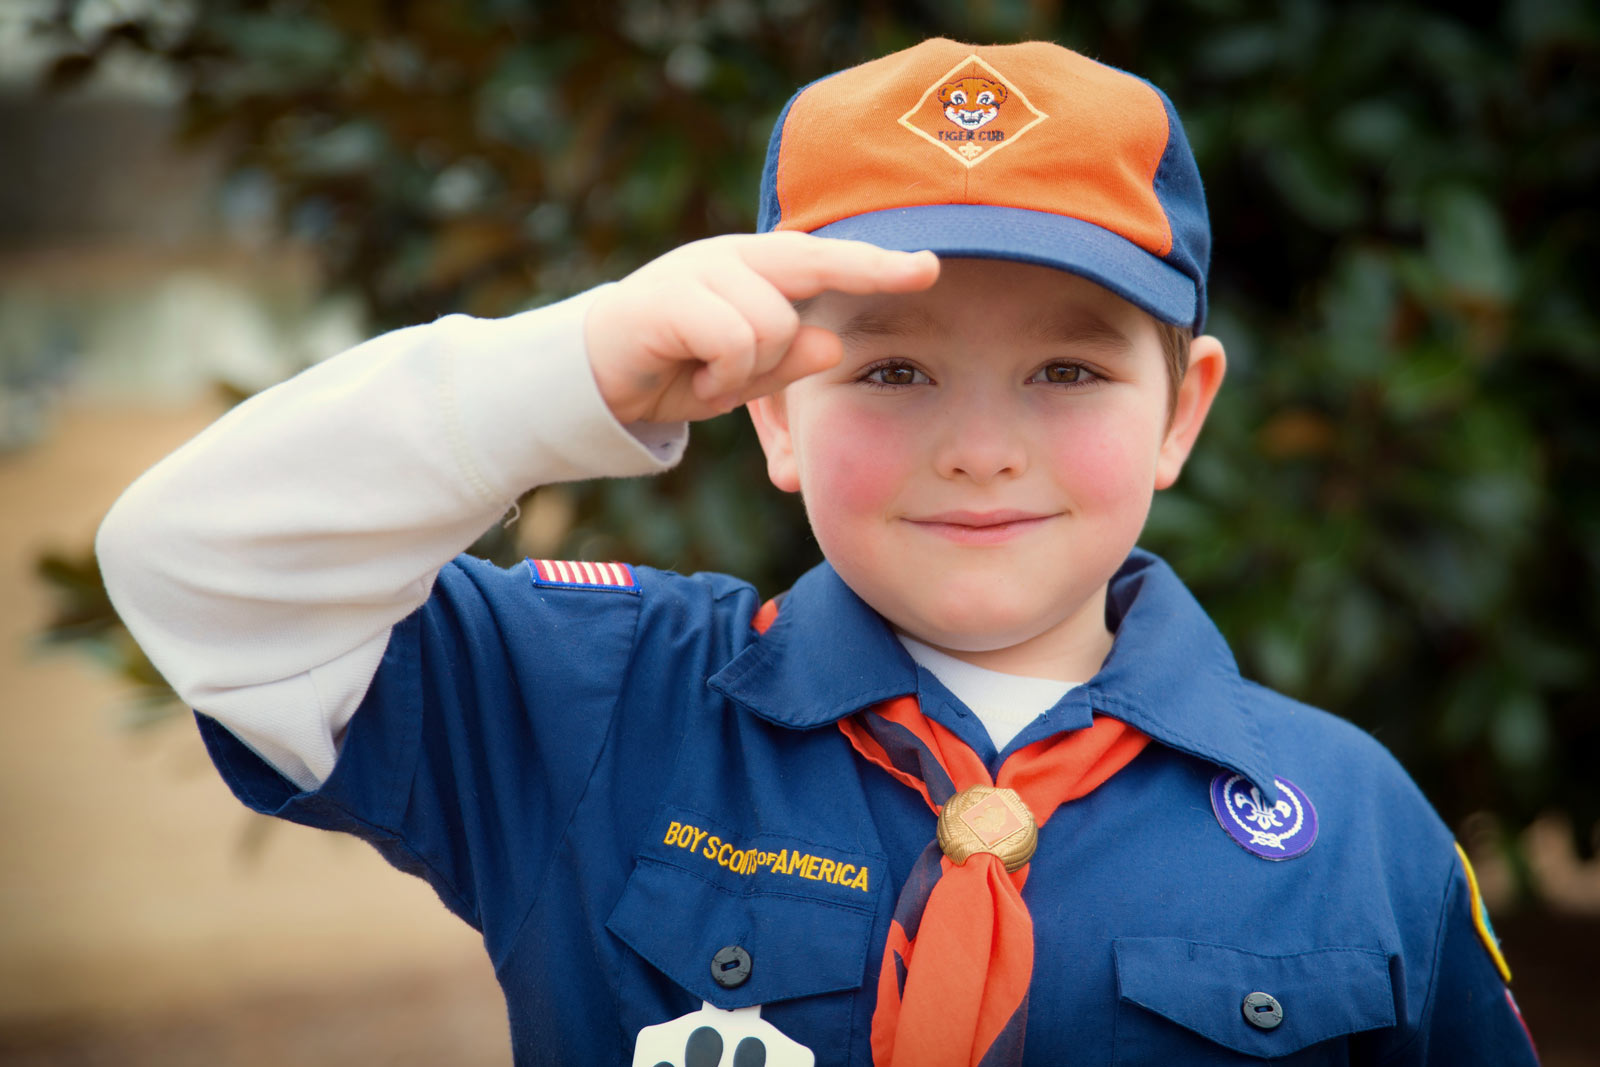 Getting Your Child Ready for Their First Scout Camp